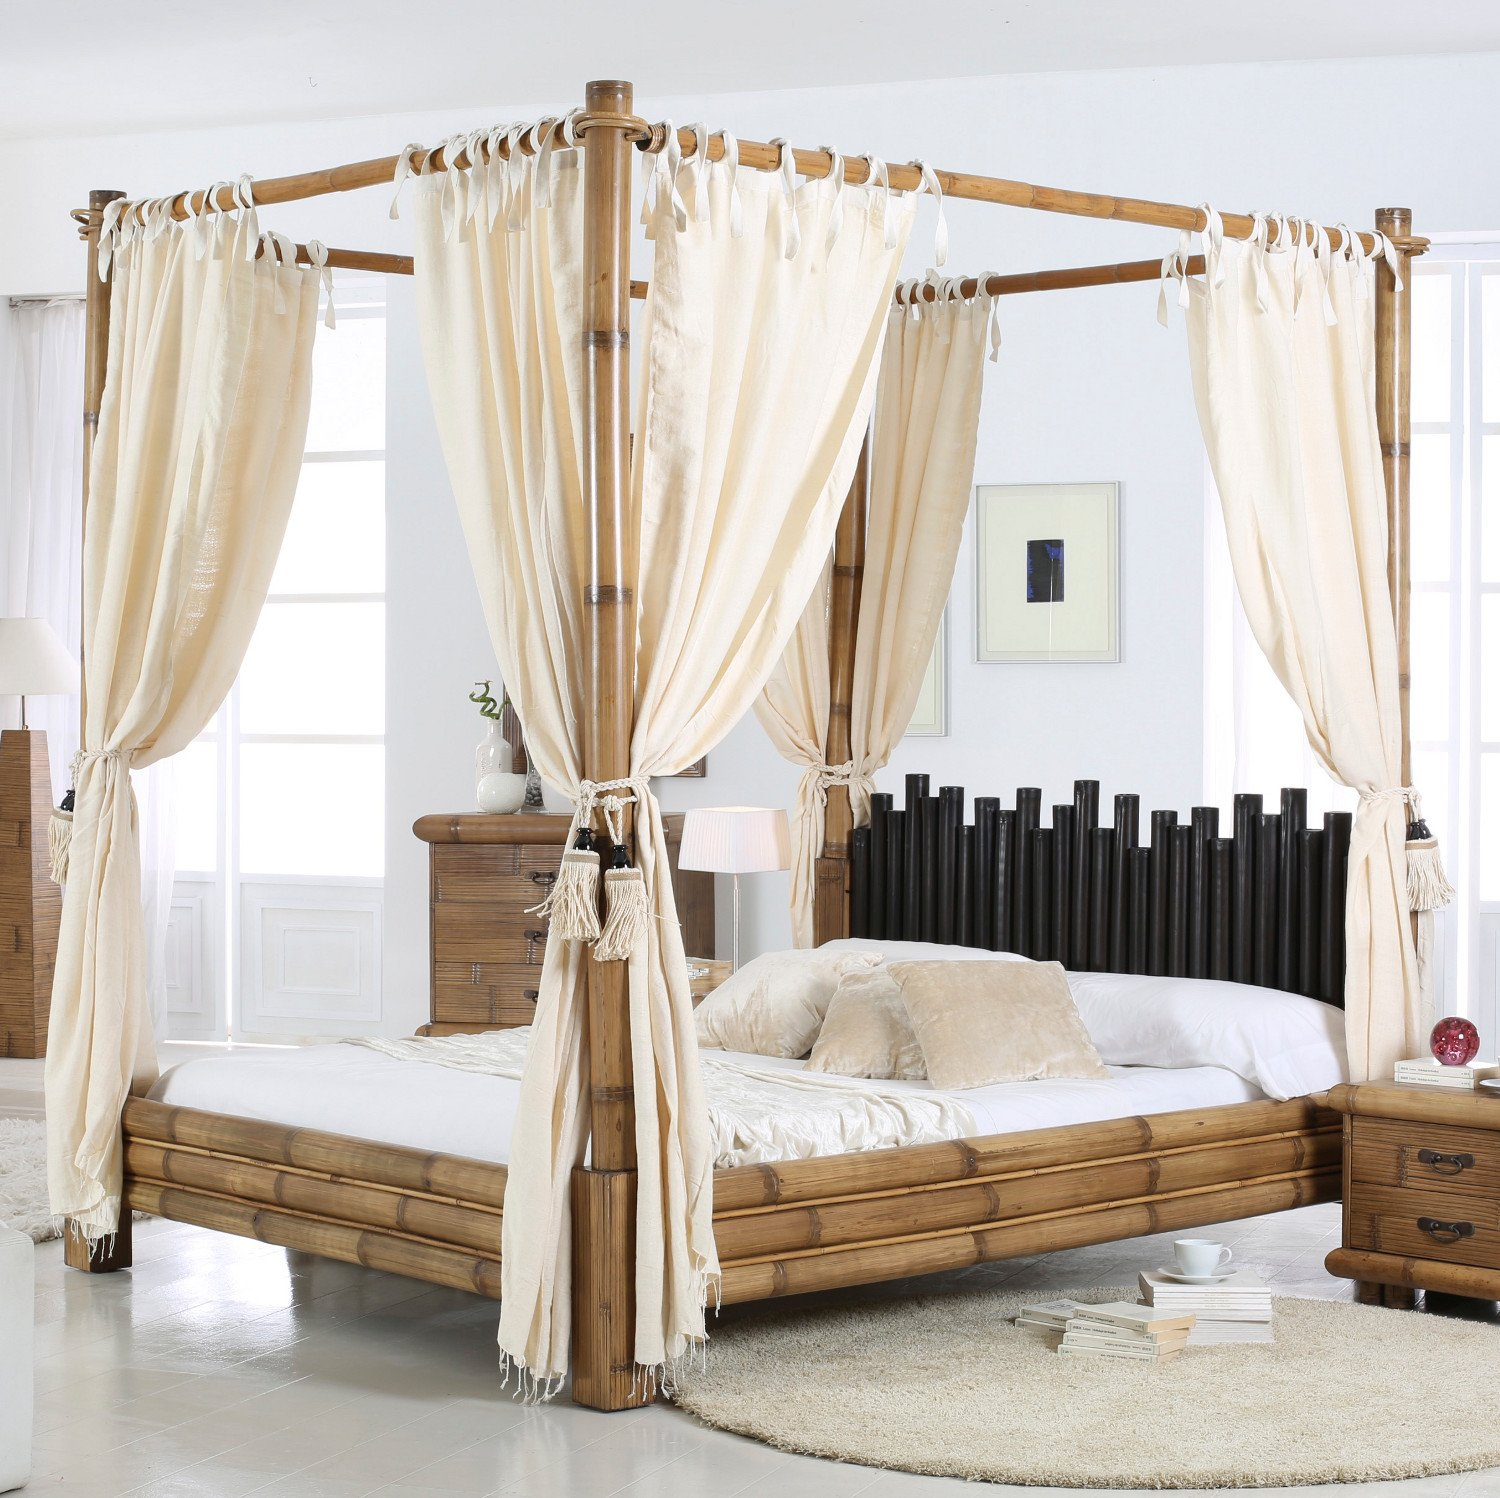 Cabana Canopy Bed Bamboo Bed 180 x 200 Honigantik Natural Amazon